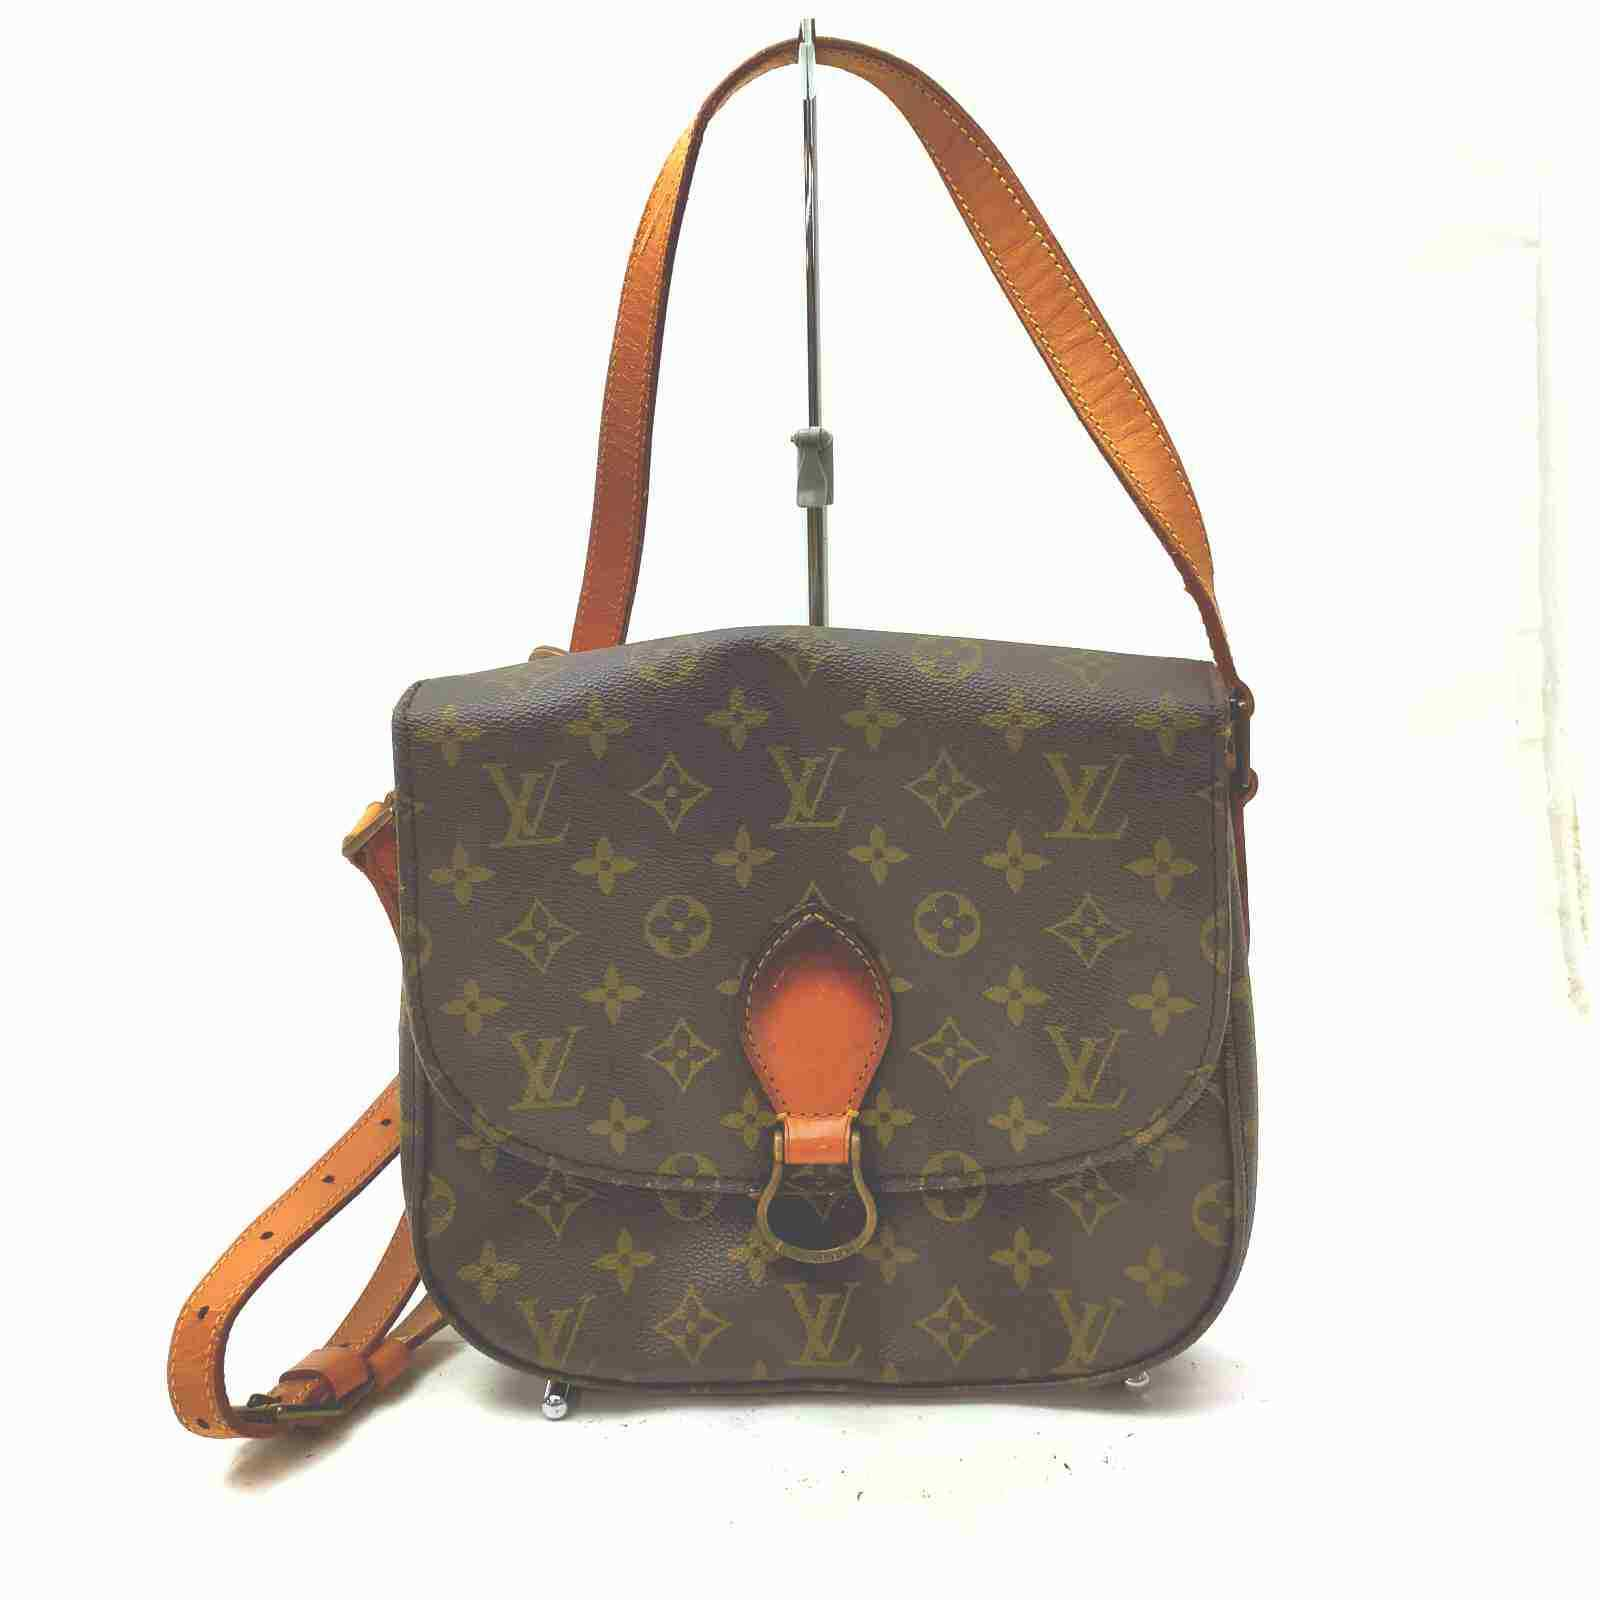 Louis Vuitton Saint Cloud GM M51242 Brown Monogram Shoulder Bag 11537